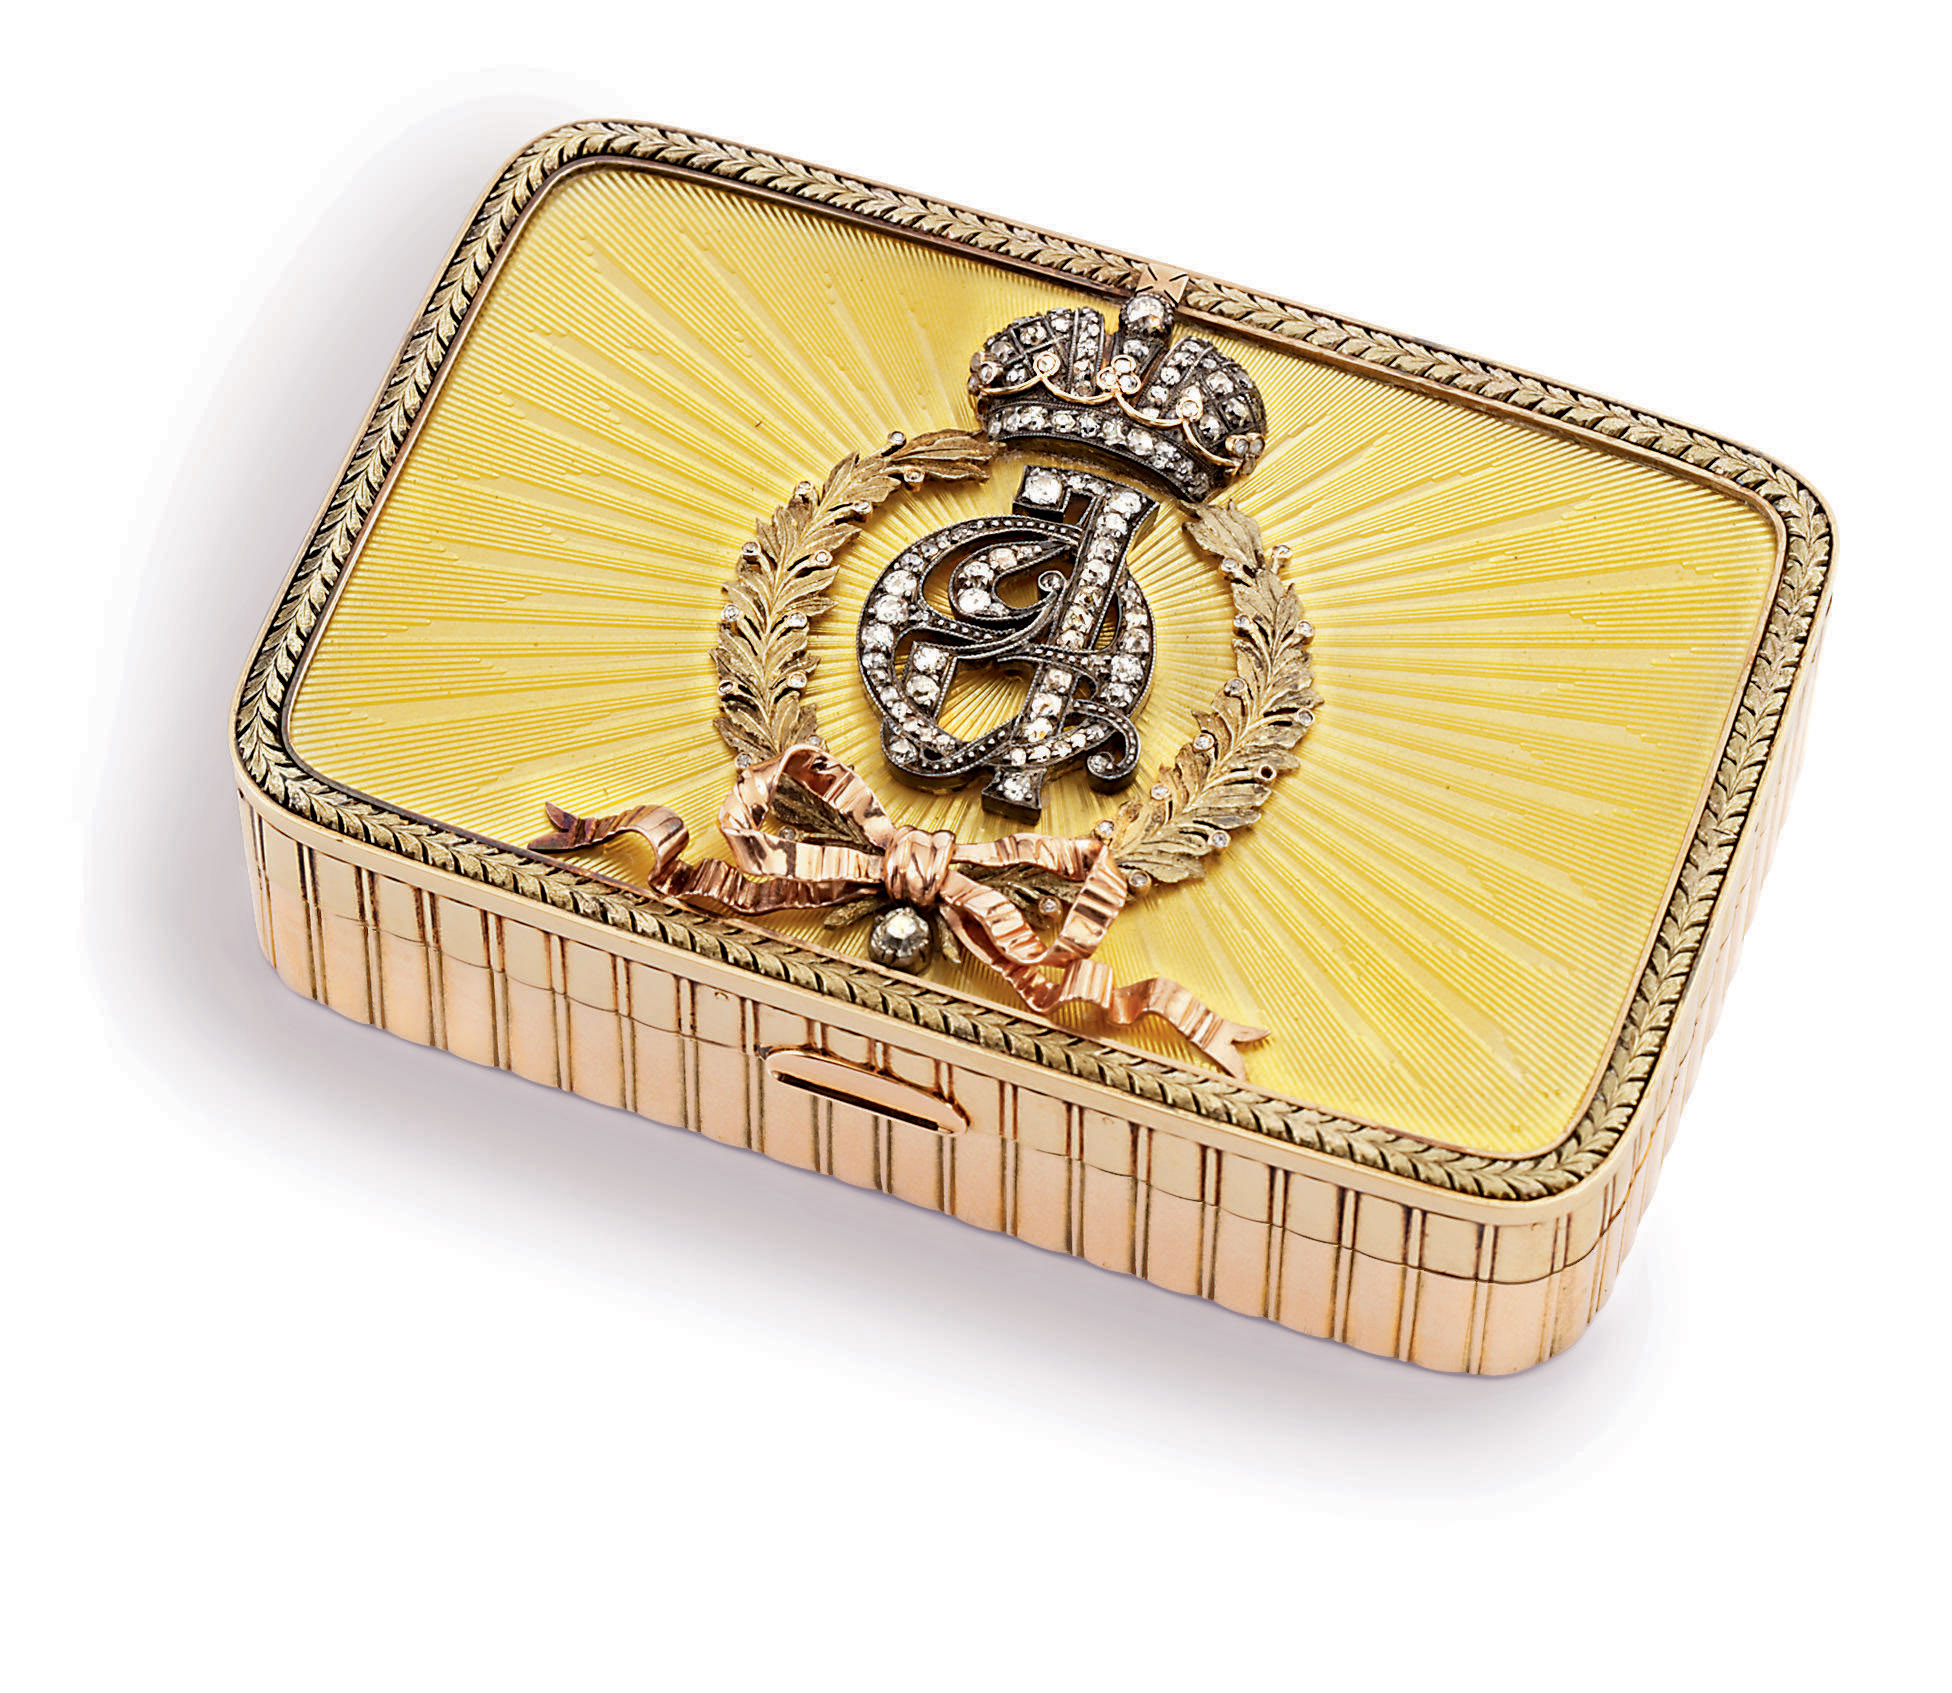 A Jewelled Two-Colour Gold-Mounted Guilloché Enamel Presentation Box